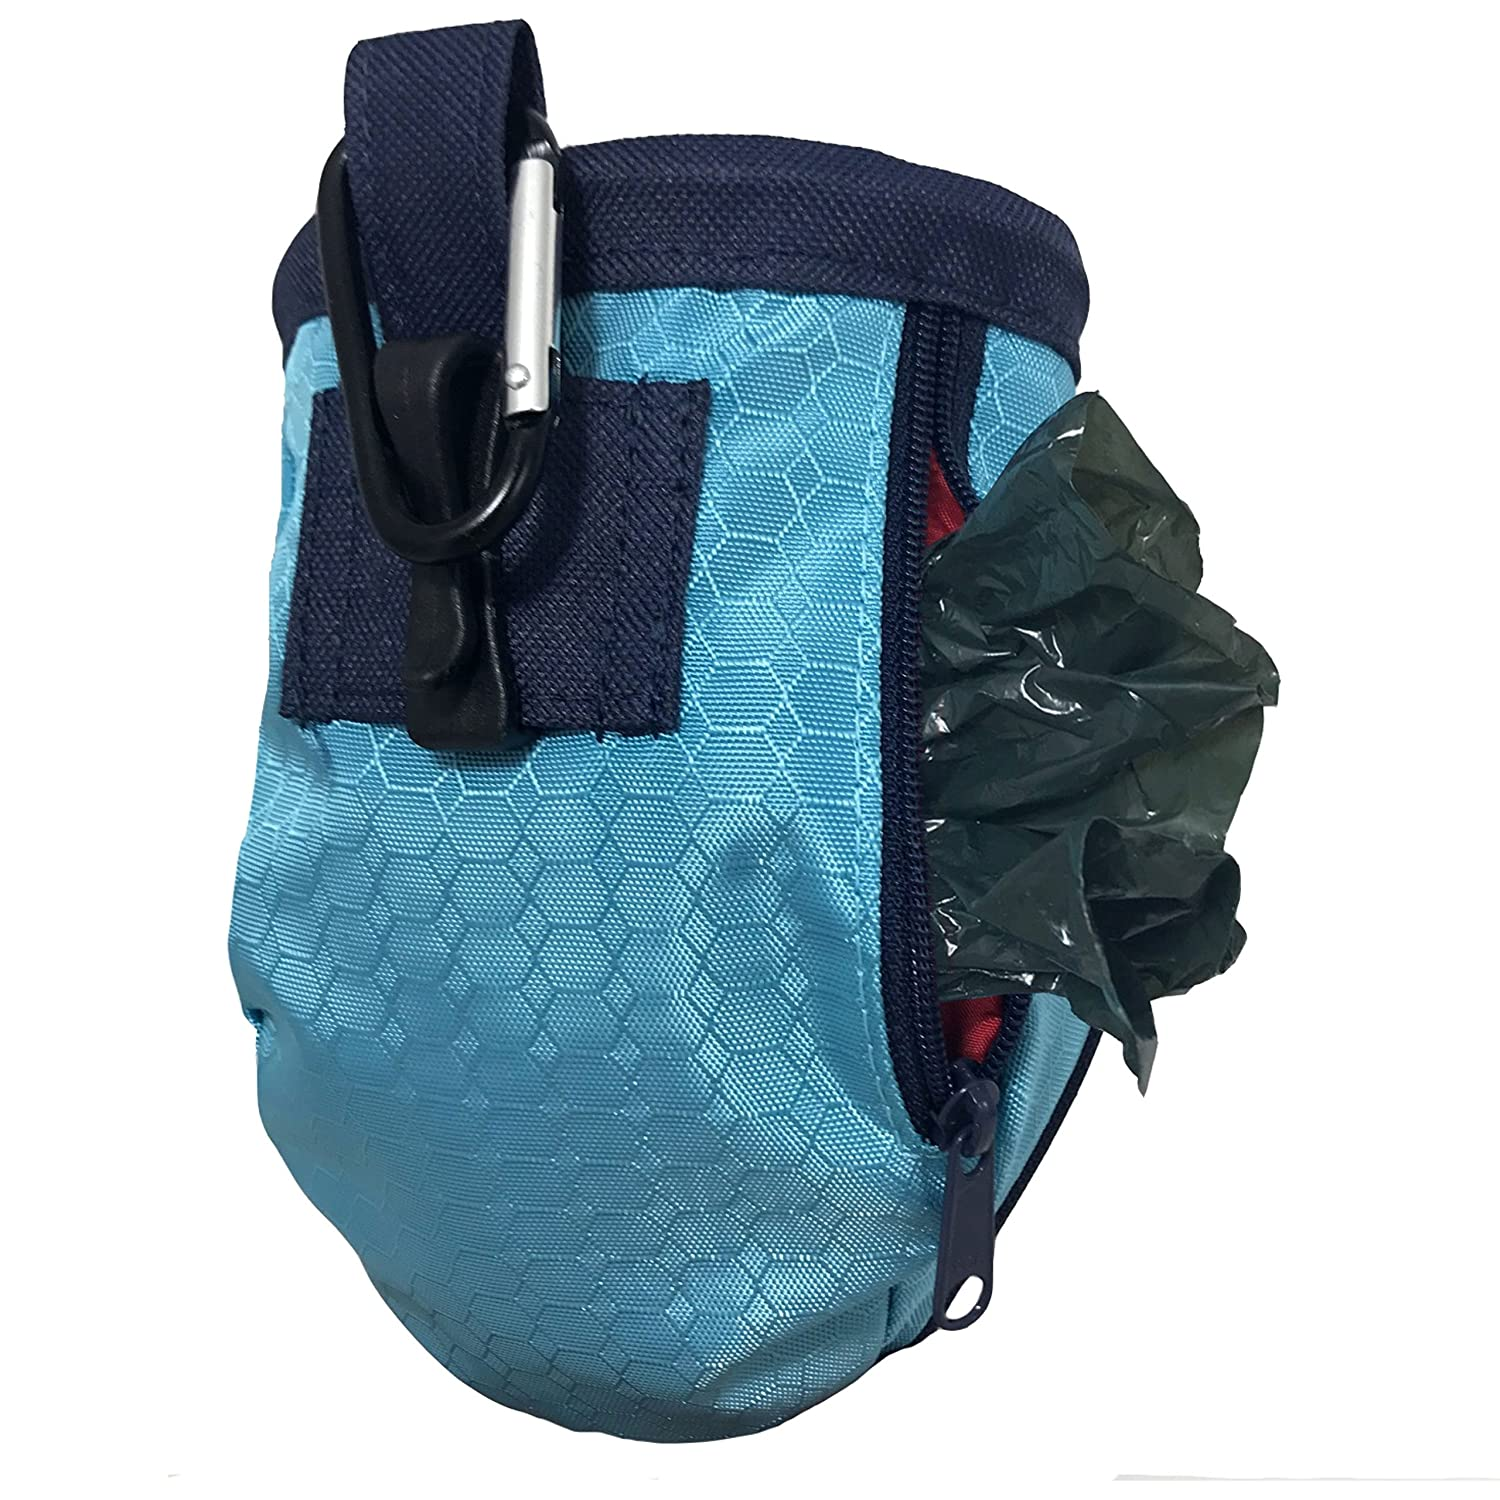 Kurgo Dog Training Treat Pouch Bag Includes Clip /& Carabiner Reflective Snack Bag for Pets Portable Pet Pocket Waist Clip Bag Treat Bags for Dogs Go Stuff-It Bag Coastal Blue /& Chili Red